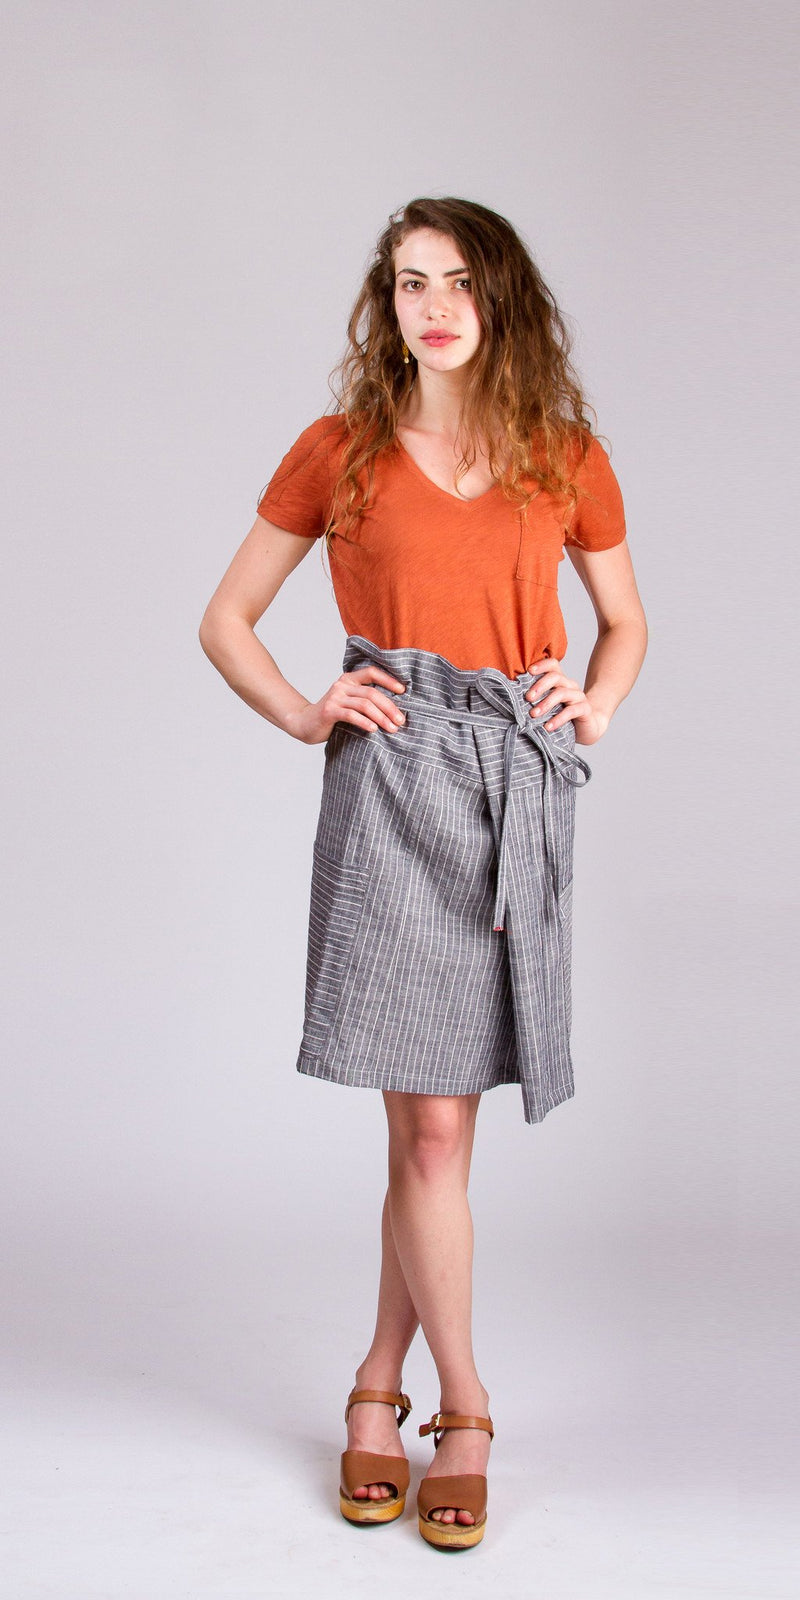 products/SkirtGrey-Edit-2_1024x1024_2x_da377491-17c4-431c-9f28-880c688dd0c1.jpg